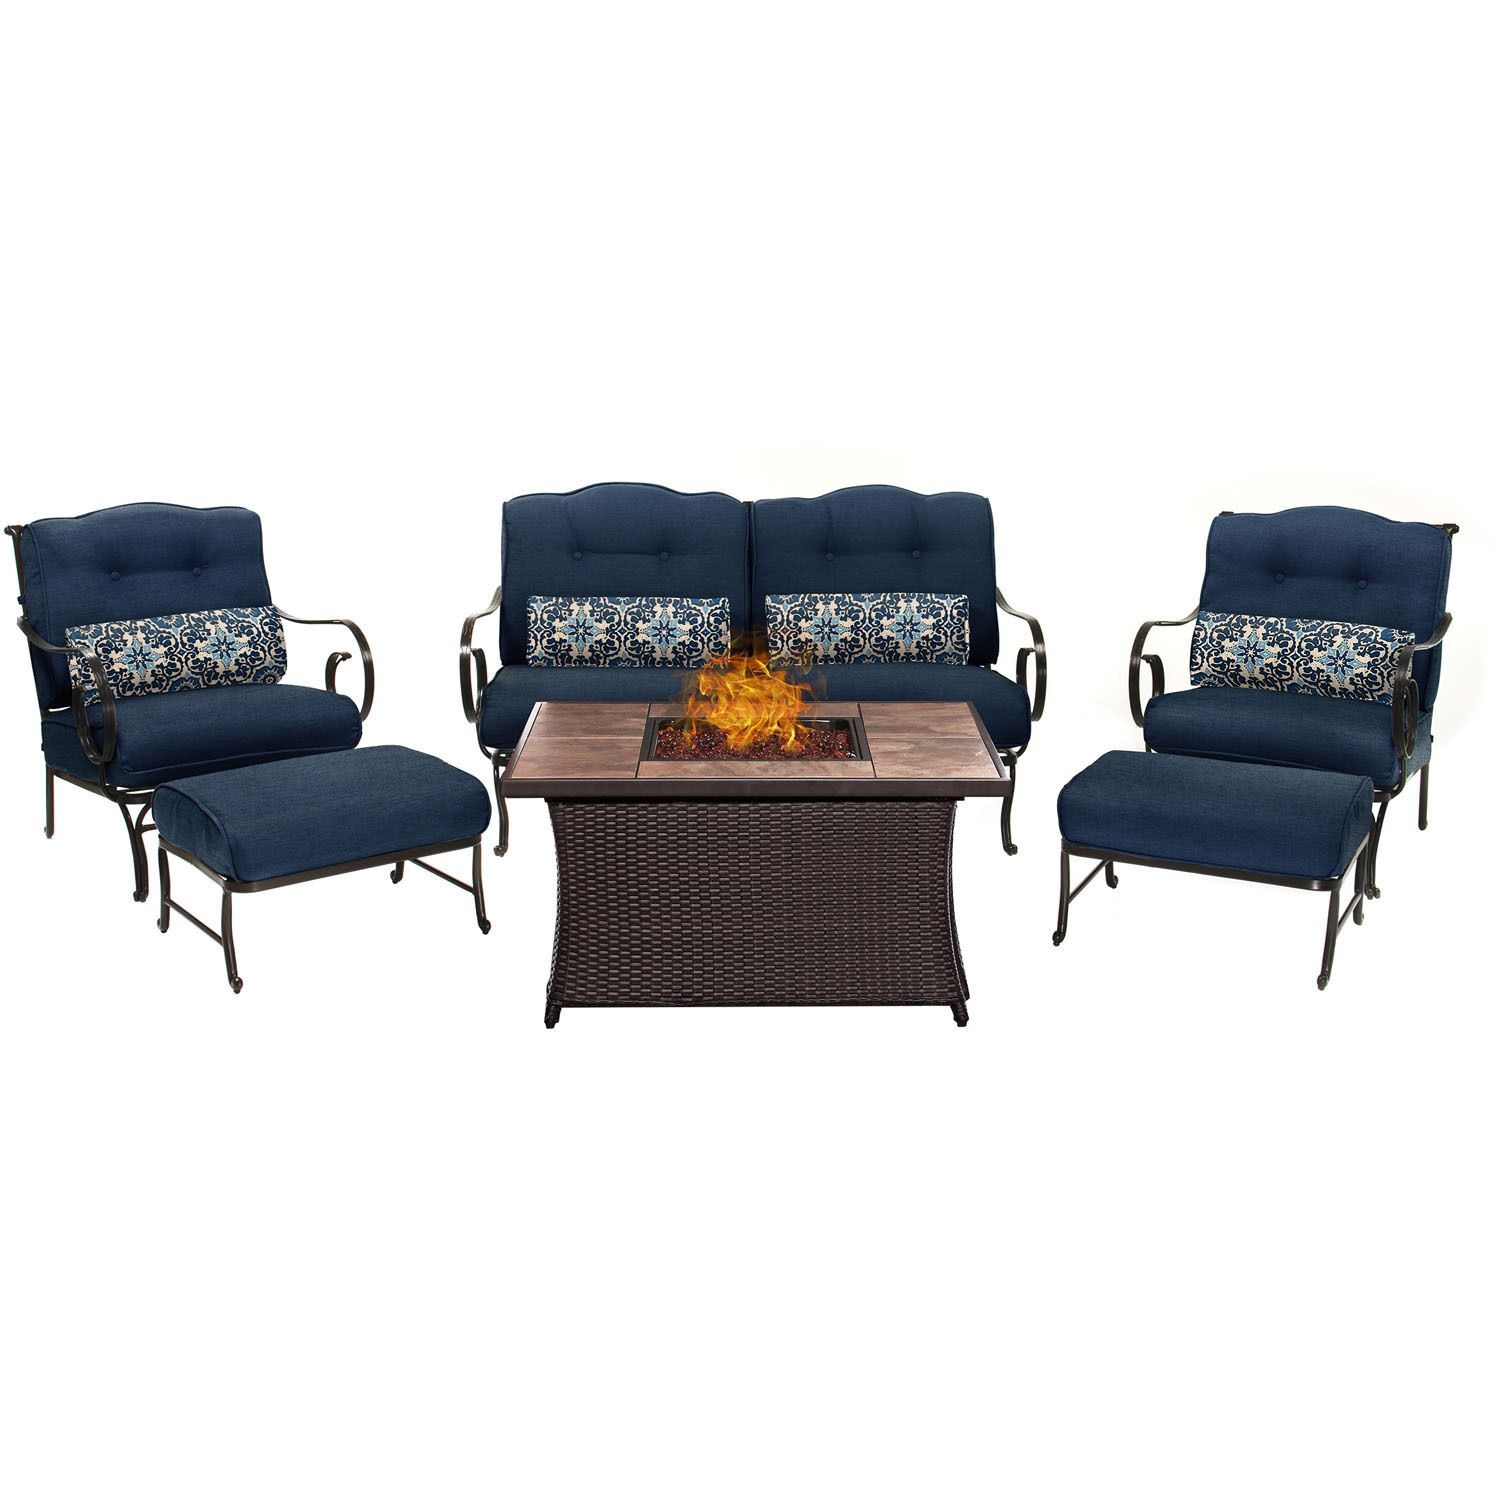 Hanover outdoor oceana piece lounge set in navy blue with lp gas